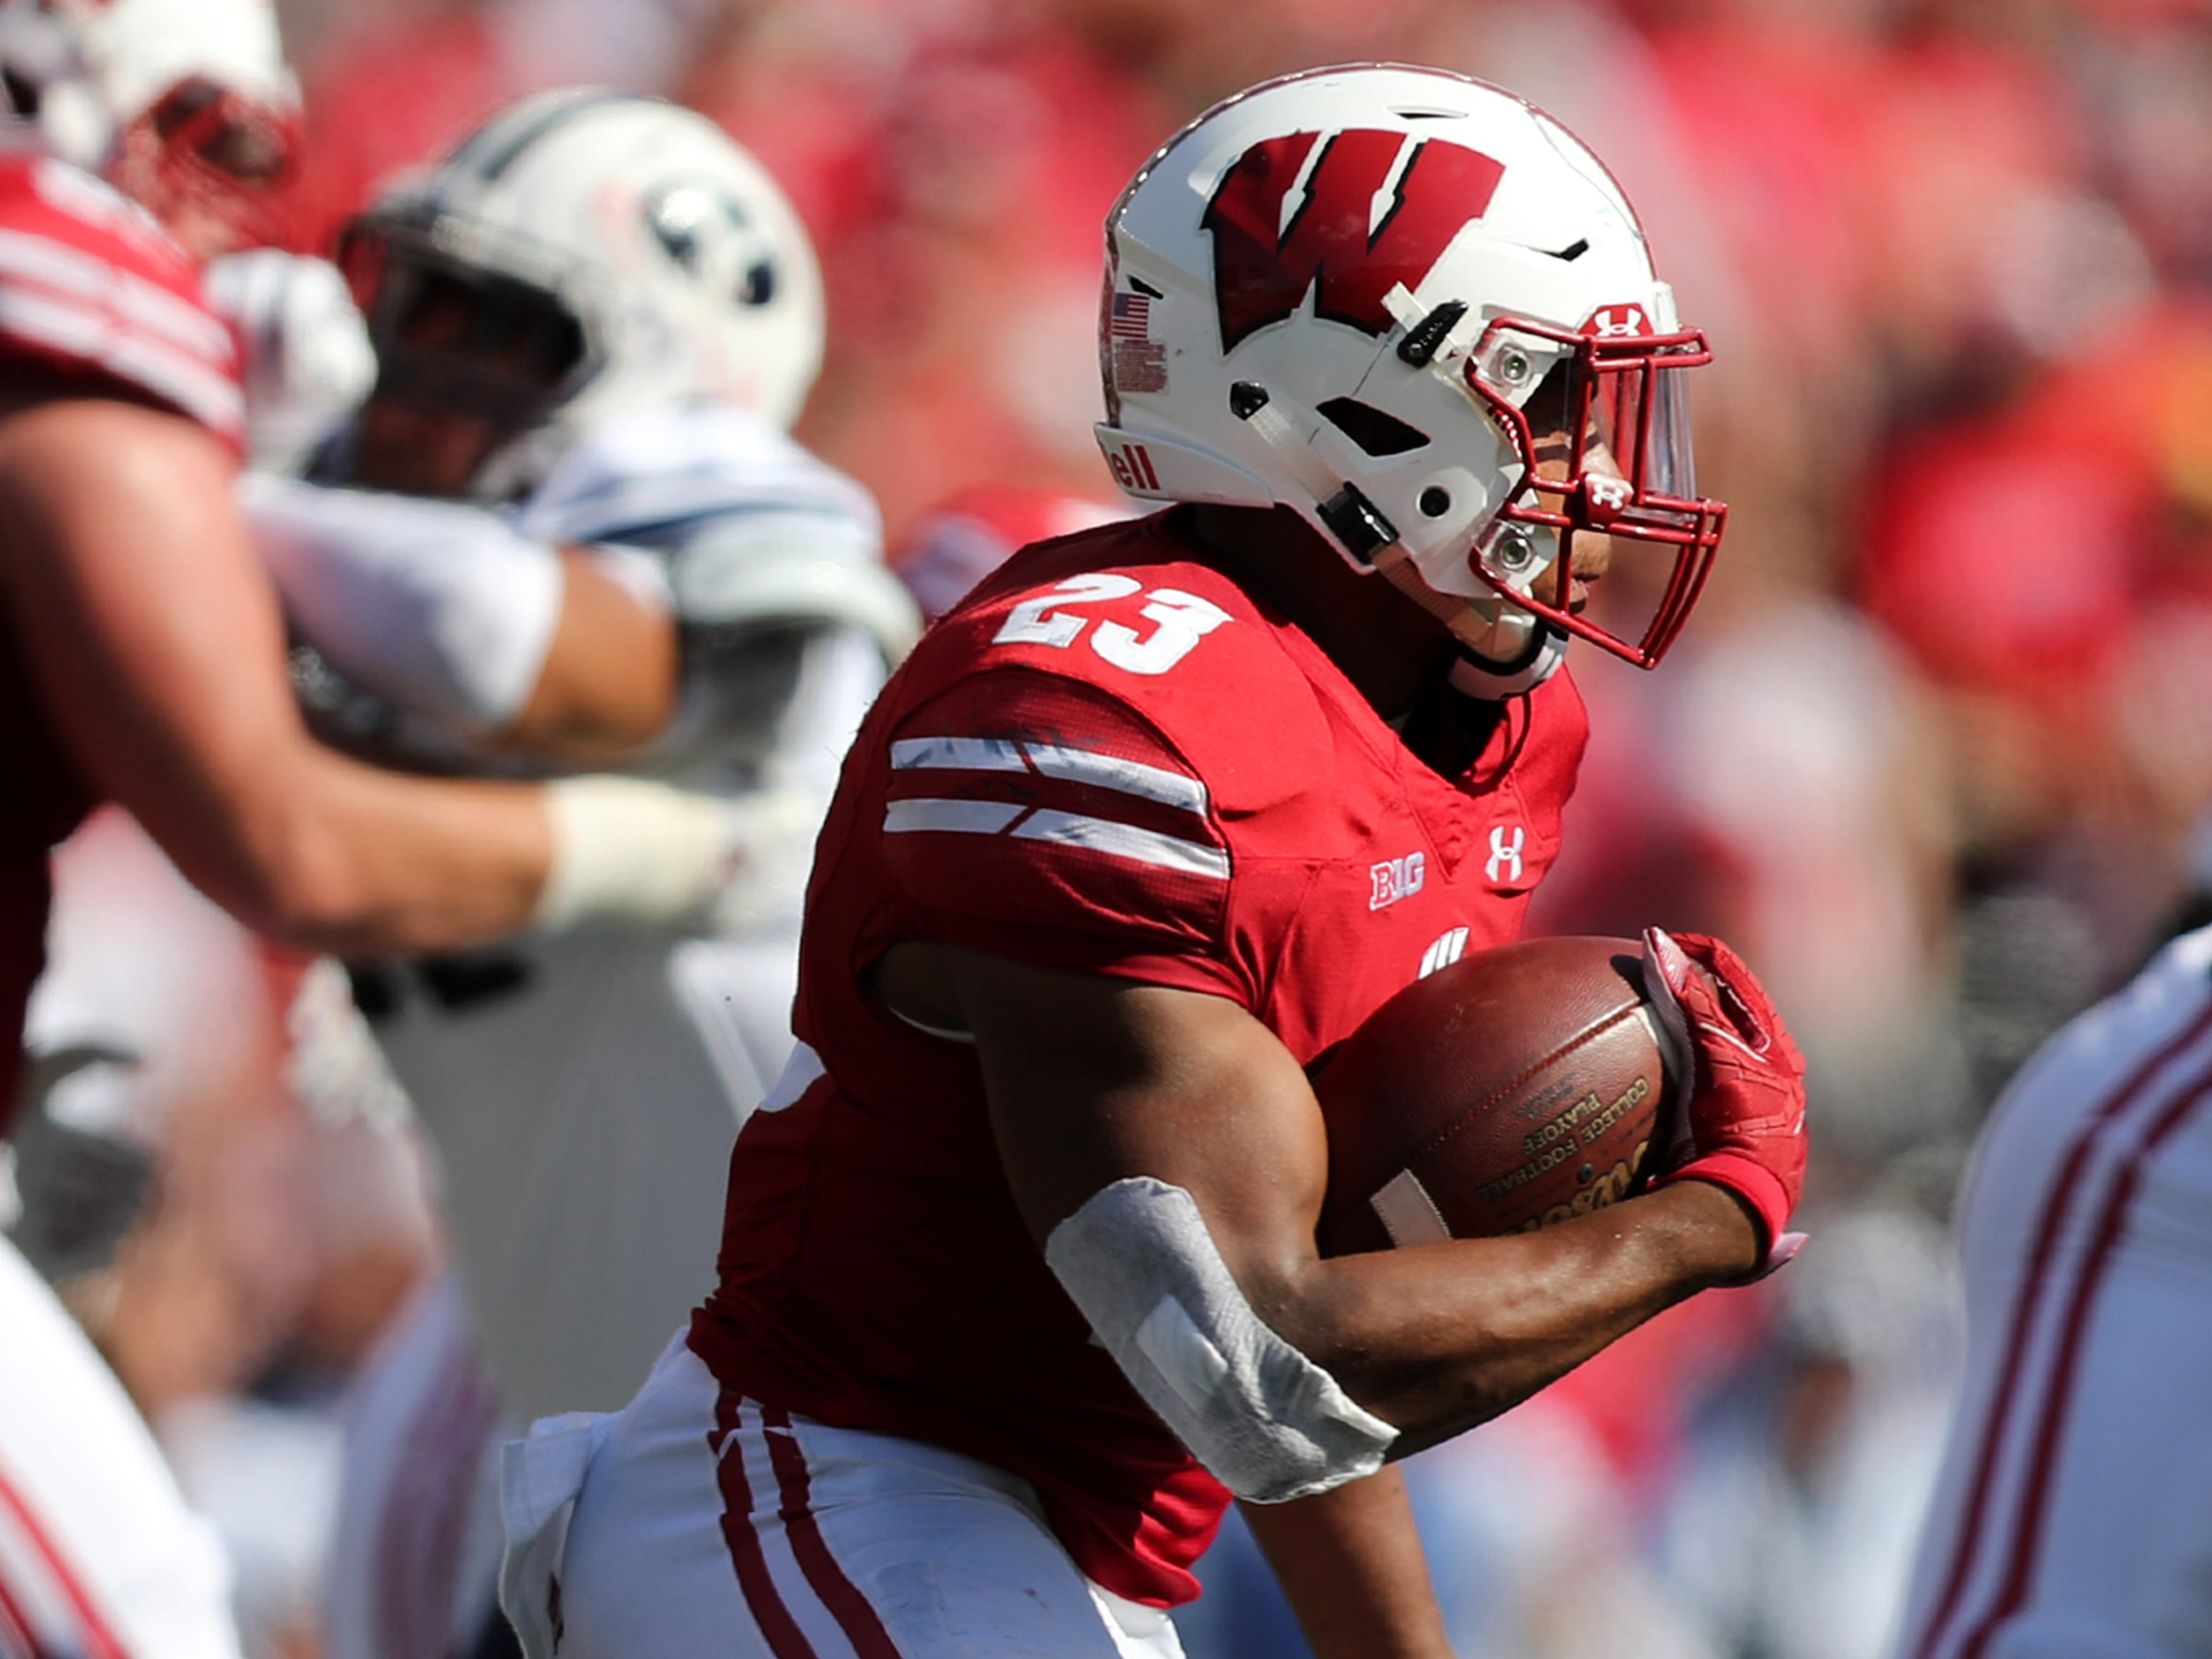 Wisconsin Badgers running back Jonathan Taylor works his way against BYU.